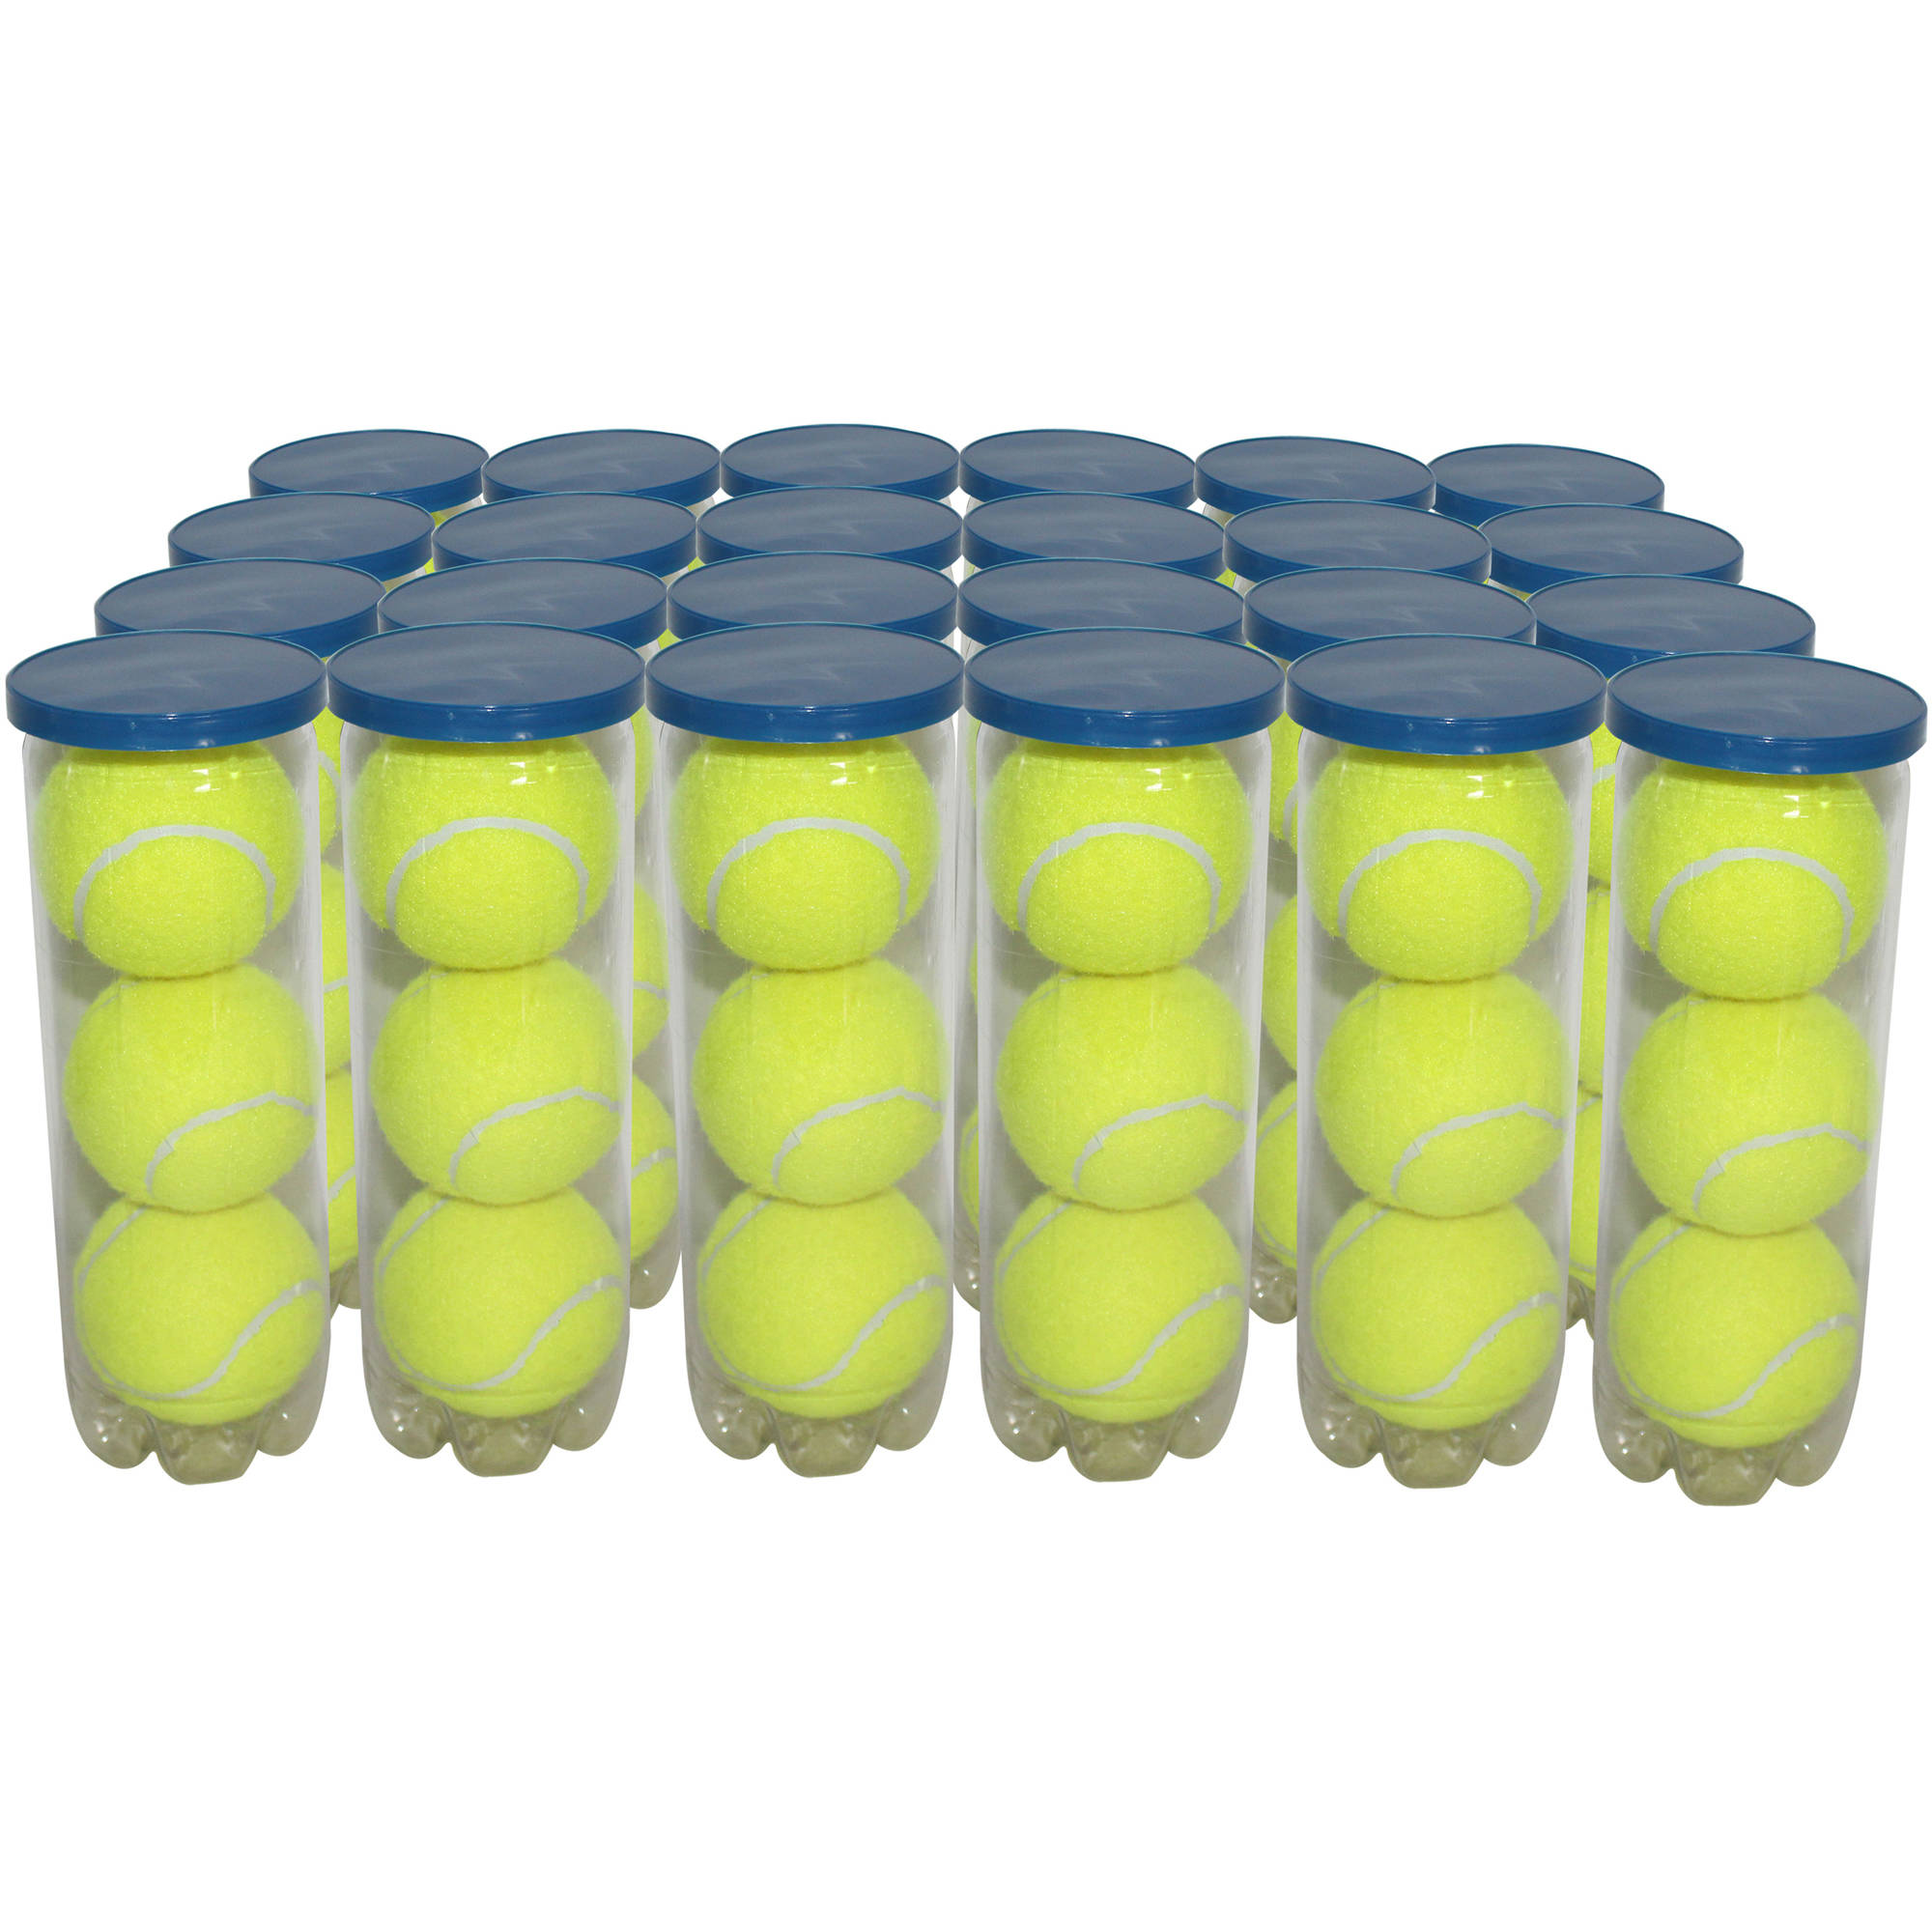 24 Cans Tennis Ball by